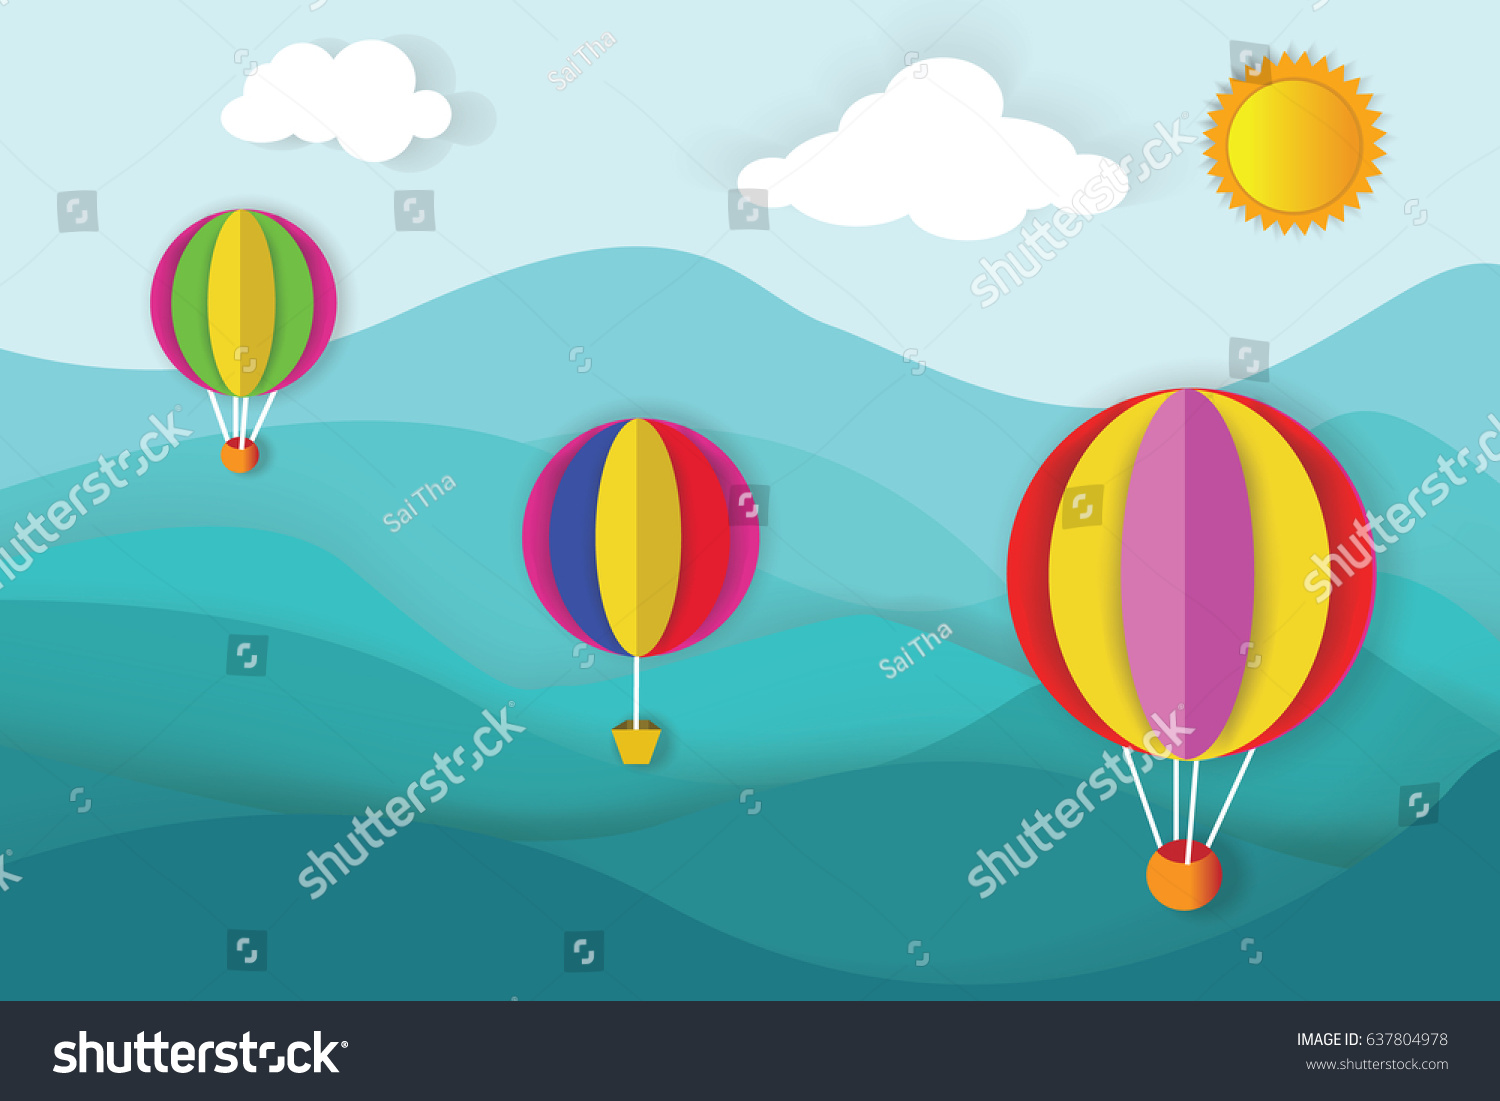 Origami made colorful hot air balloon stock vector 637804978 origami made colorful hot air balloon flying over the top of mountain viewper art jeuxipadfo Choice Image